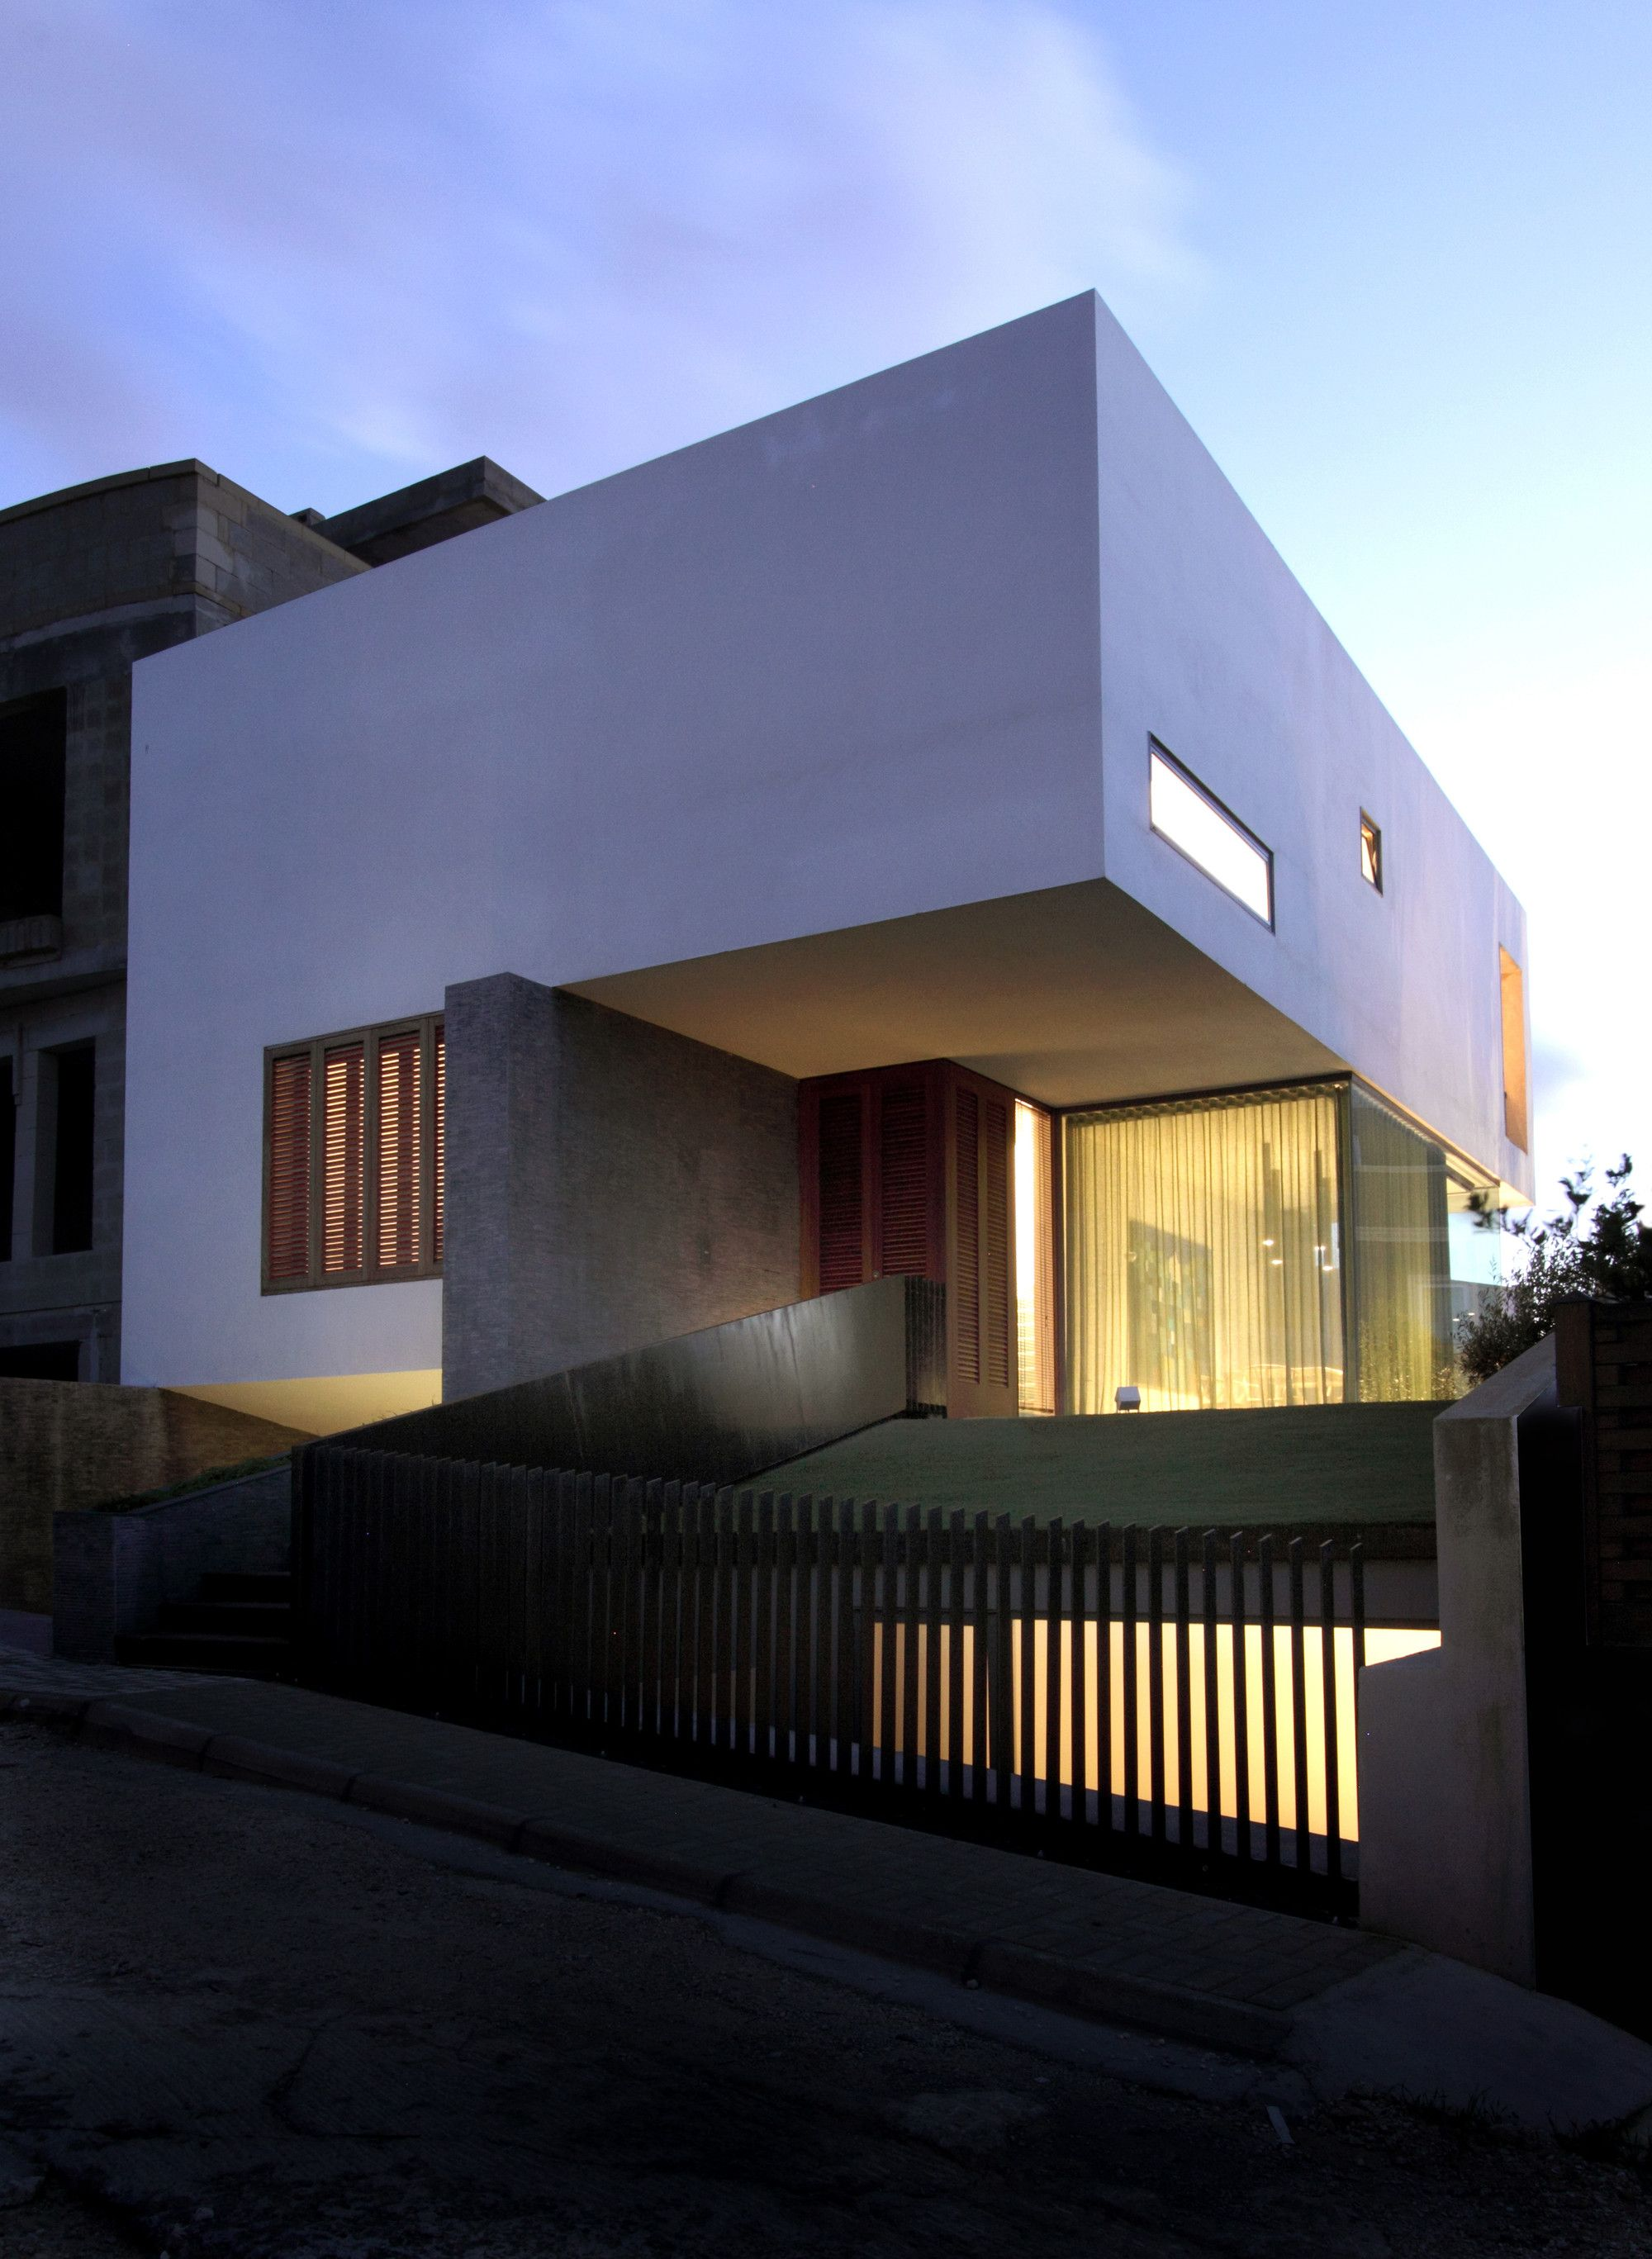 ^ 1000+ images about Full houses on Pinterest rchitects ...